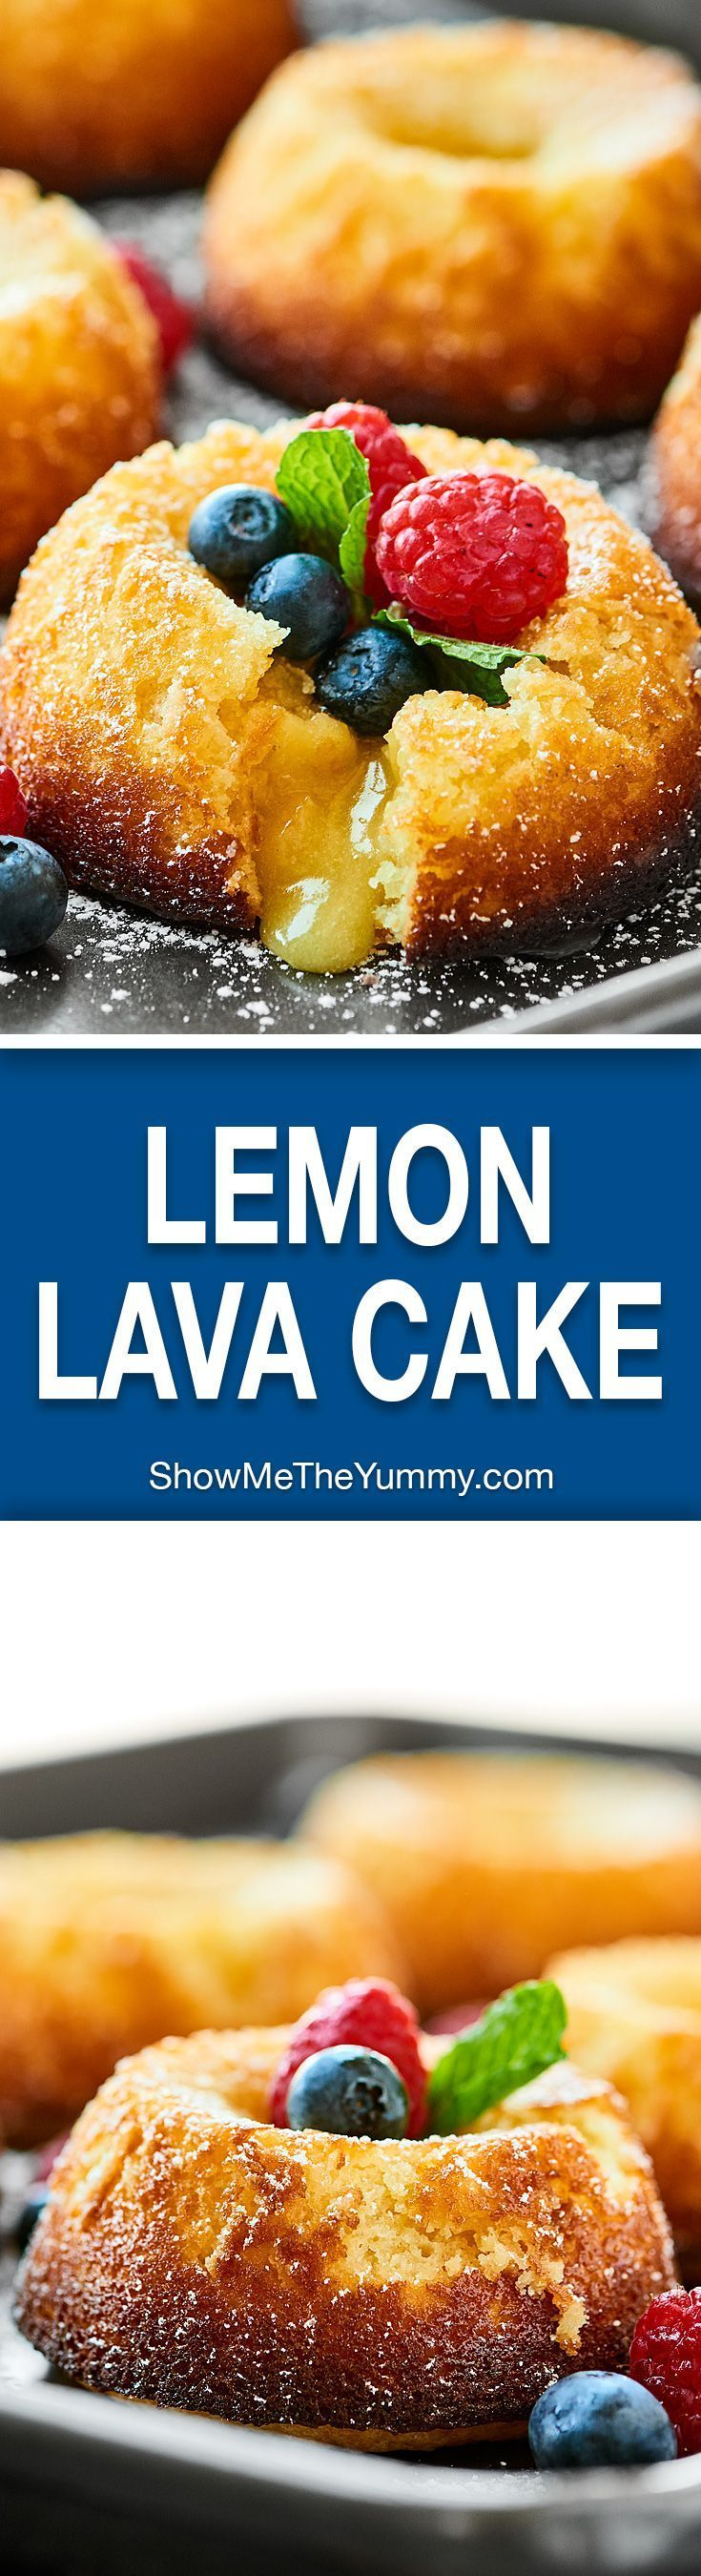 An ultra tender cake with slightly crisp edges and a perfectly white chocolate lemon-y molten lava gooey center, this Lemon Lava Cake is surprisingly easy and so decadent!